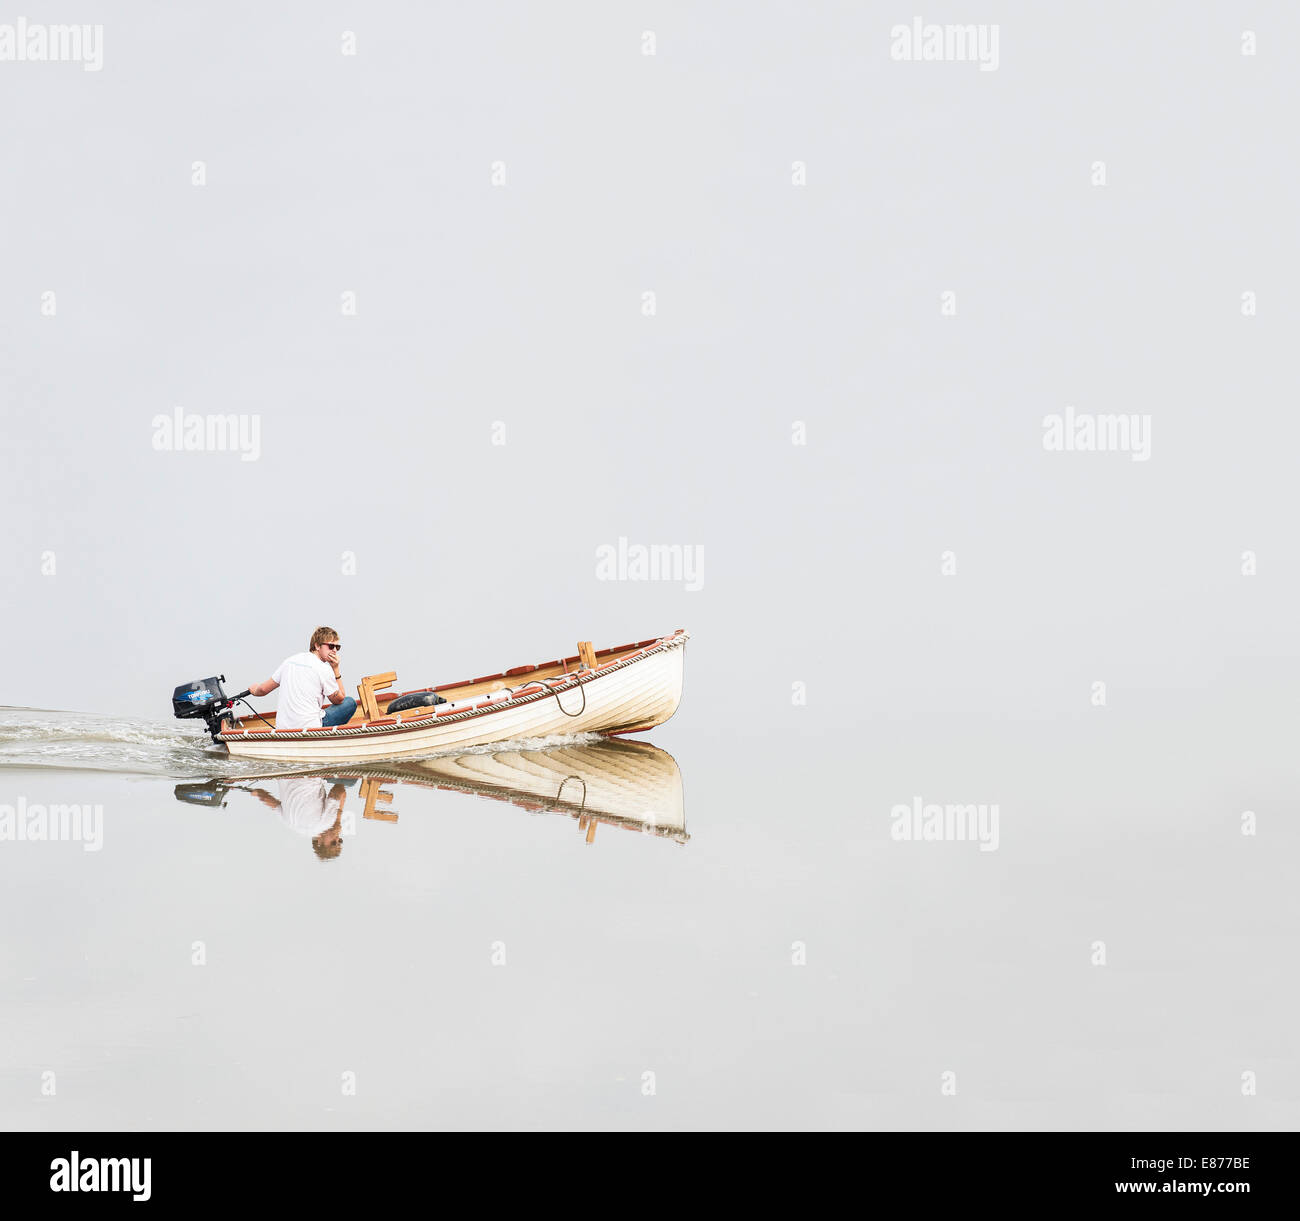 A man steering a small dinghy on a placid Blackwater River in Essex. - Stock Image